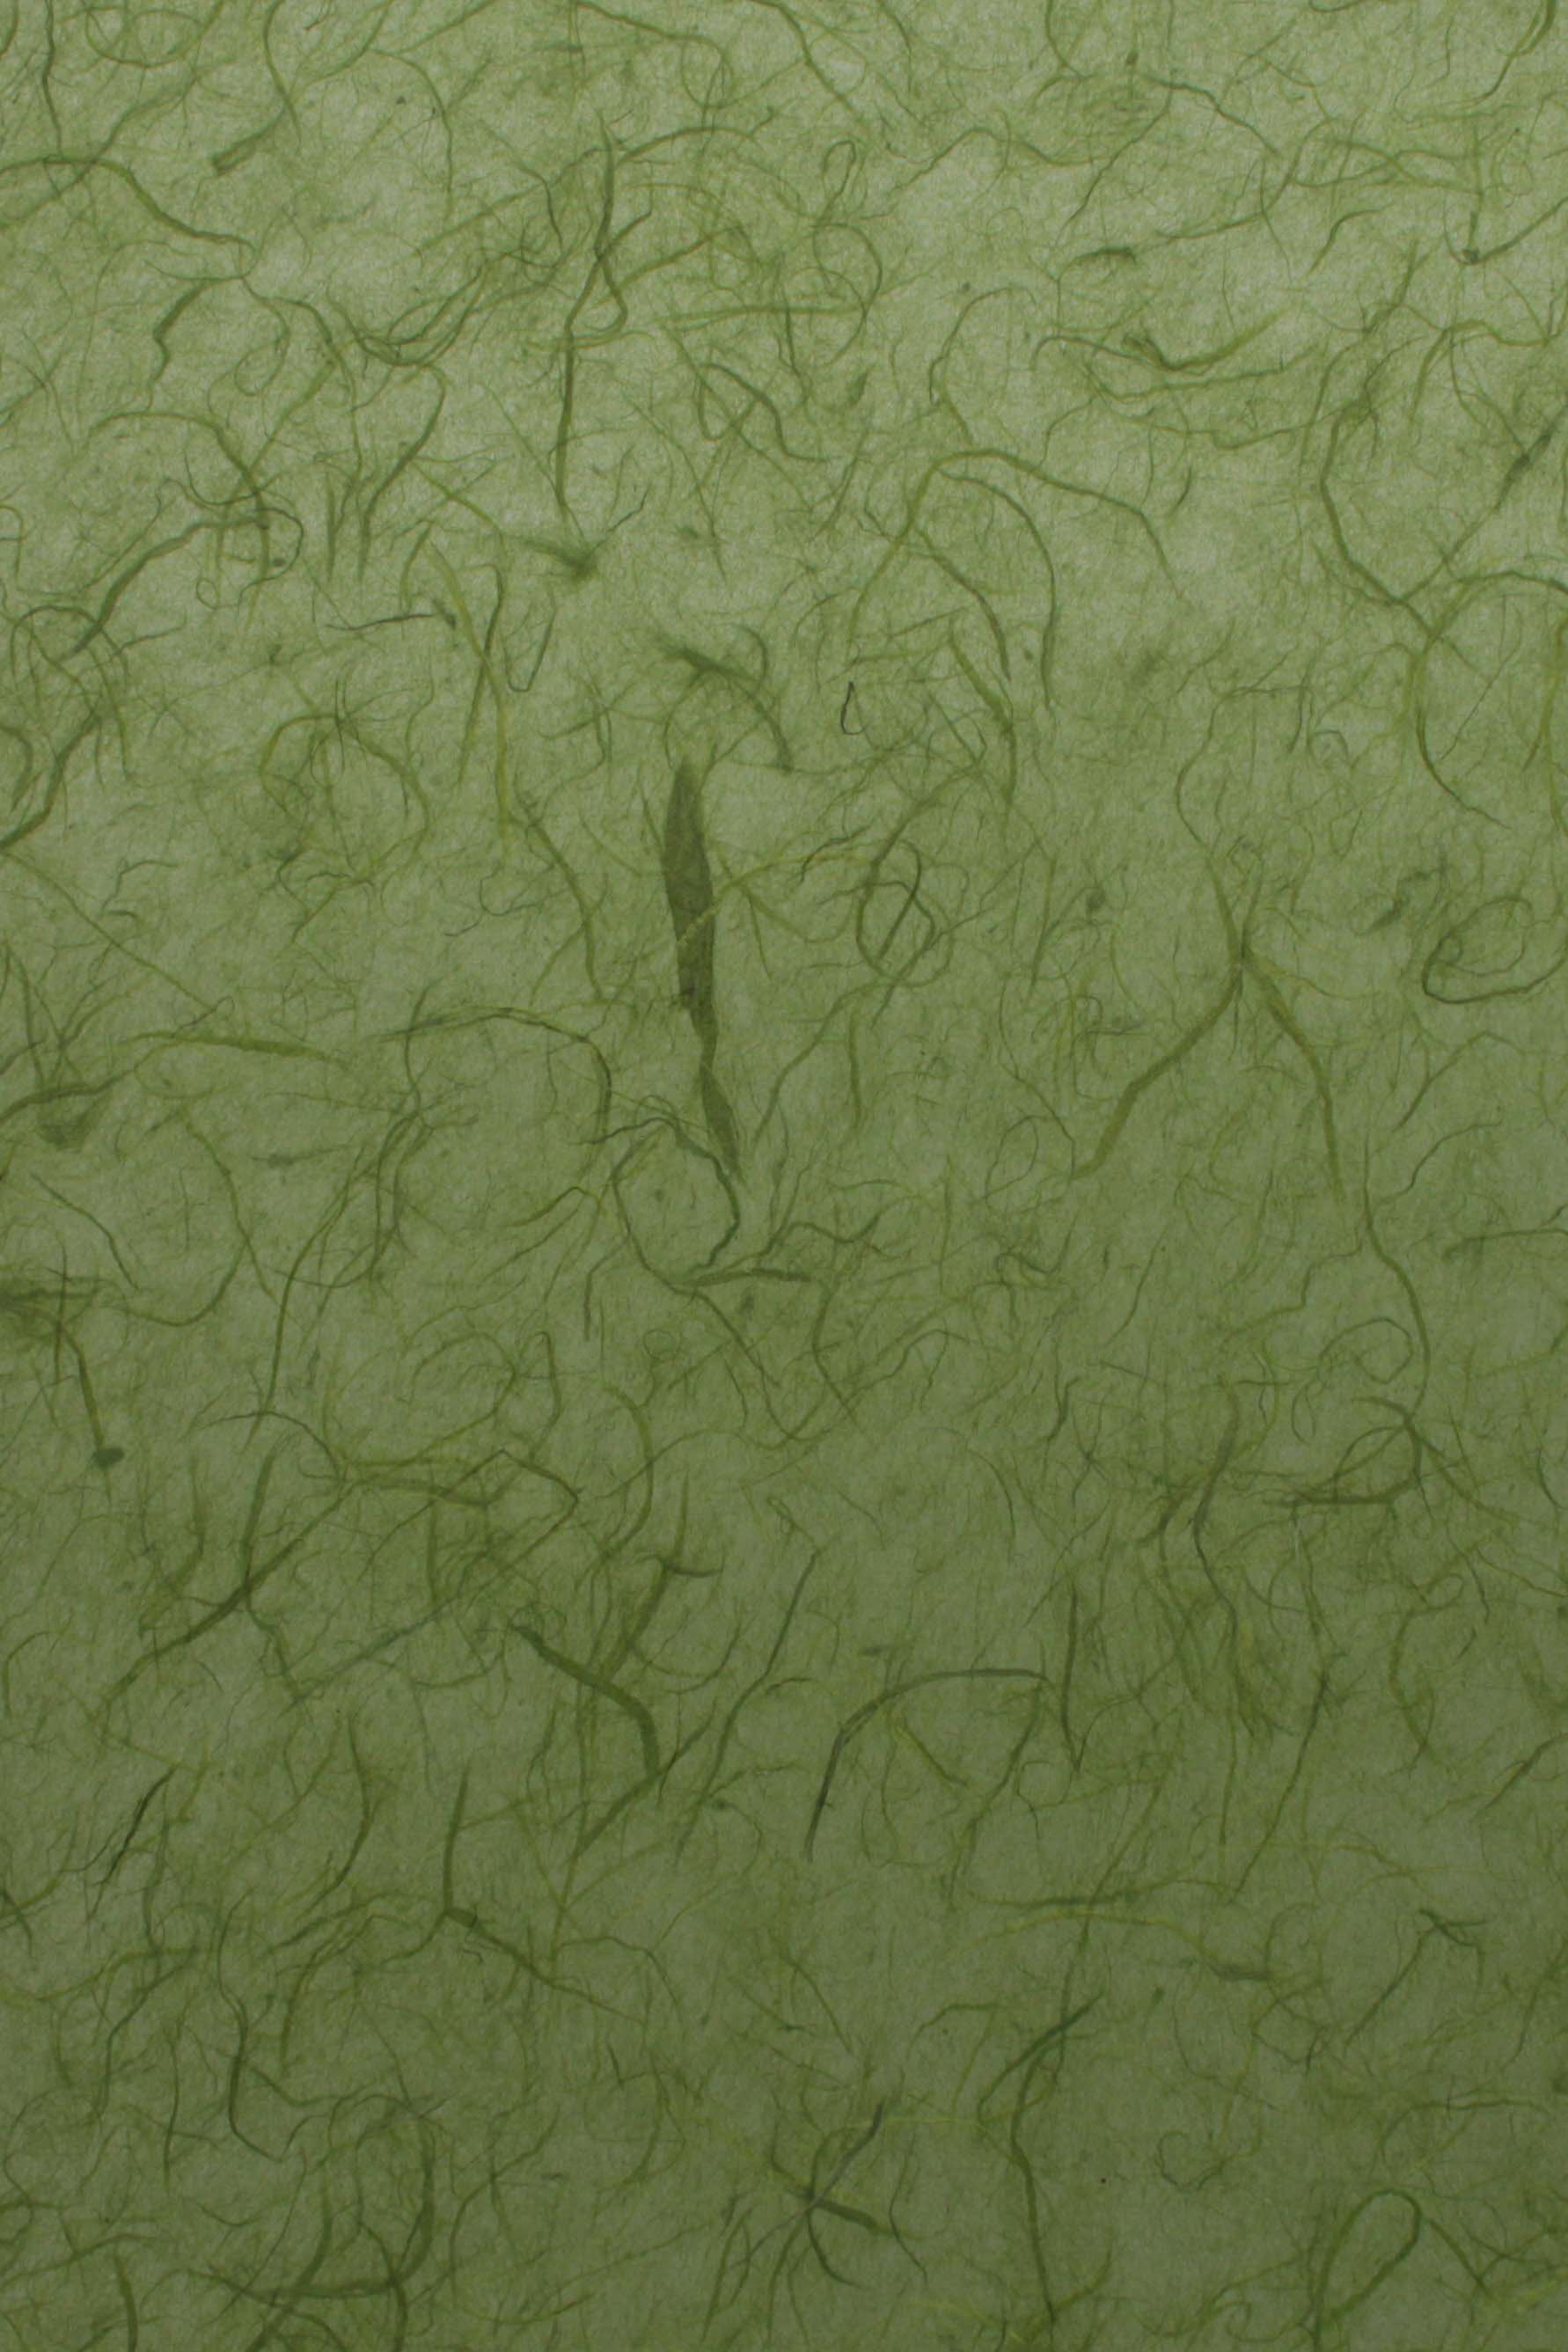 Thai Silk Moss Green - Liberties Papers